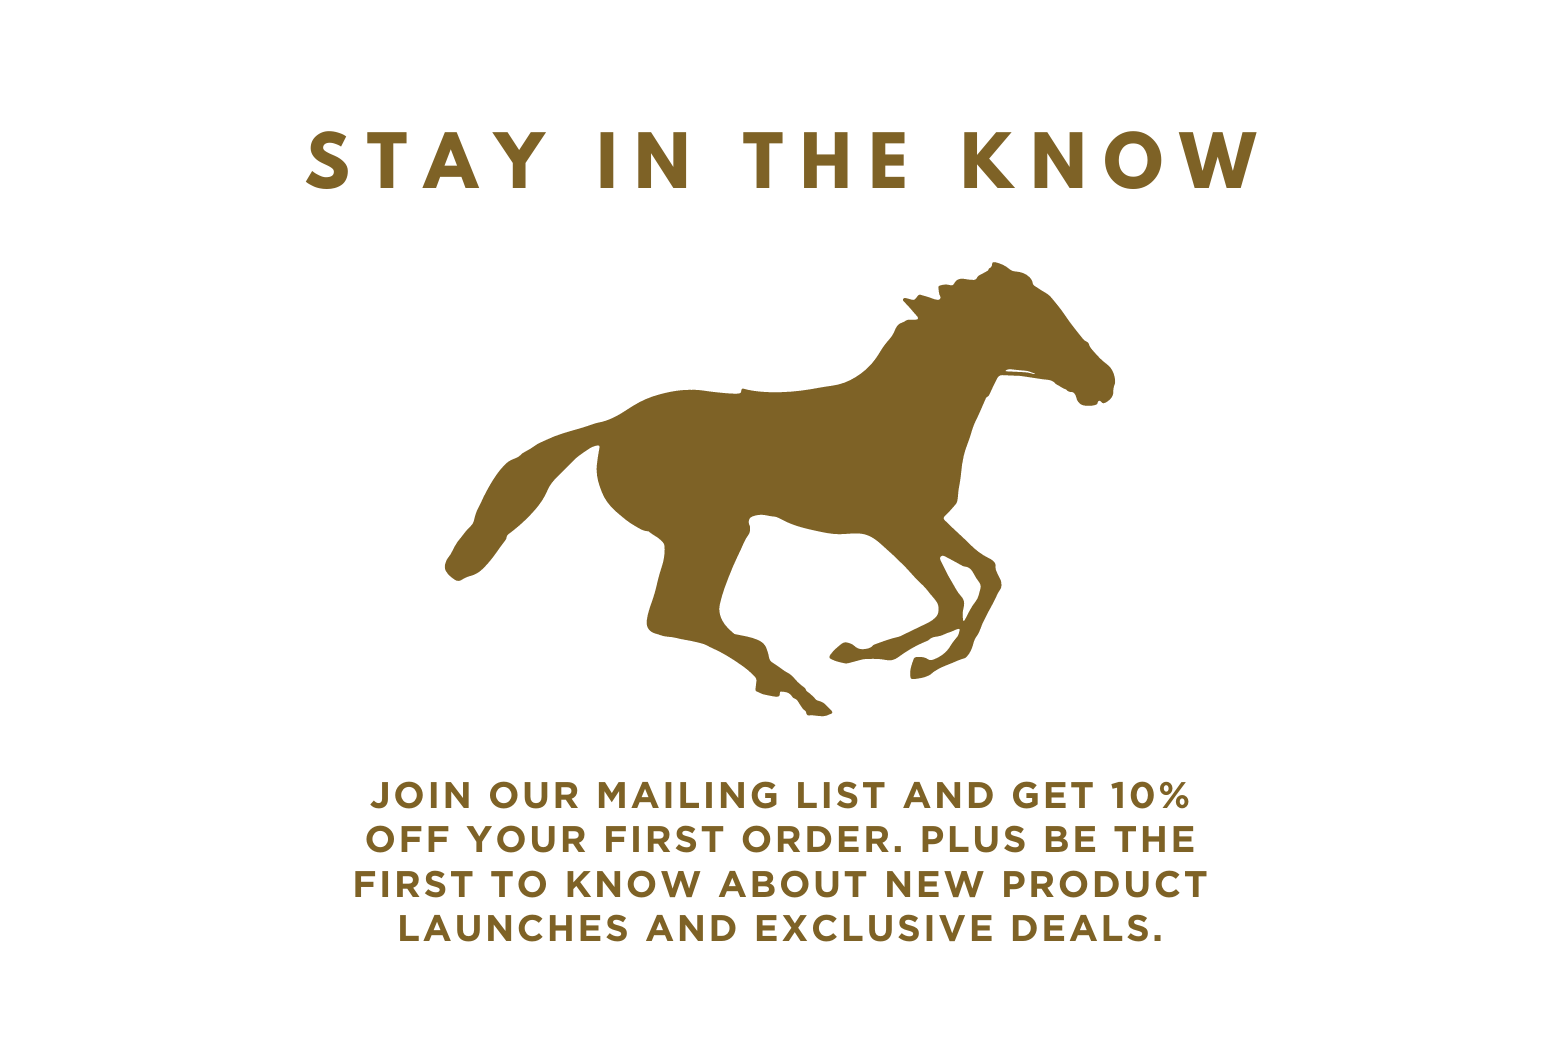 Join our mailing list and save 10% off your first order.